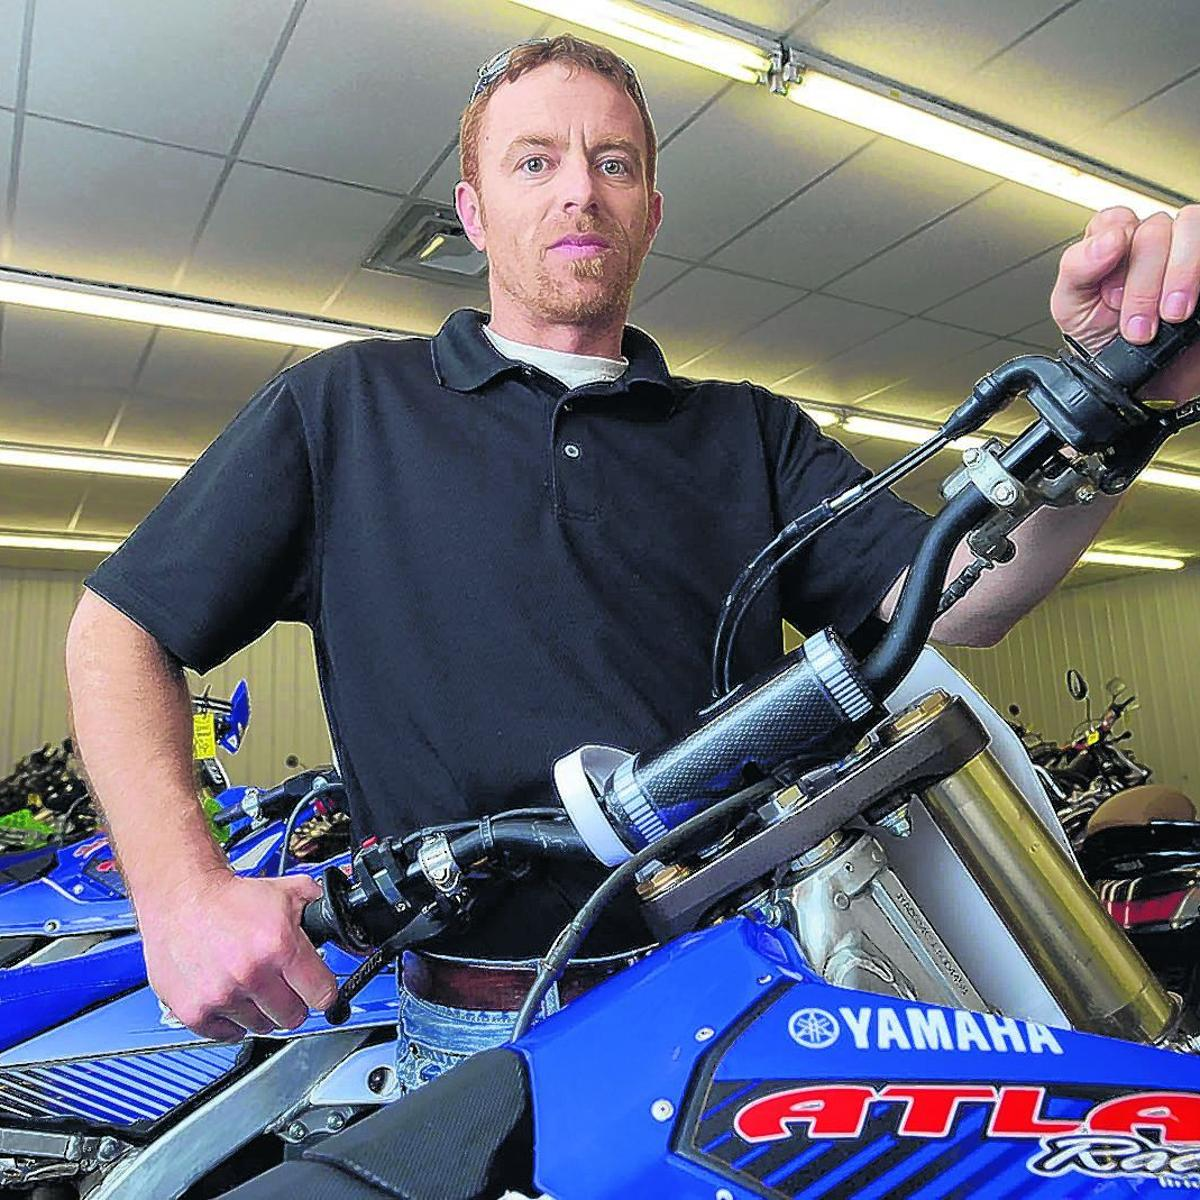 Bristol's Leonard plays a major role in the GNCC series | Sports